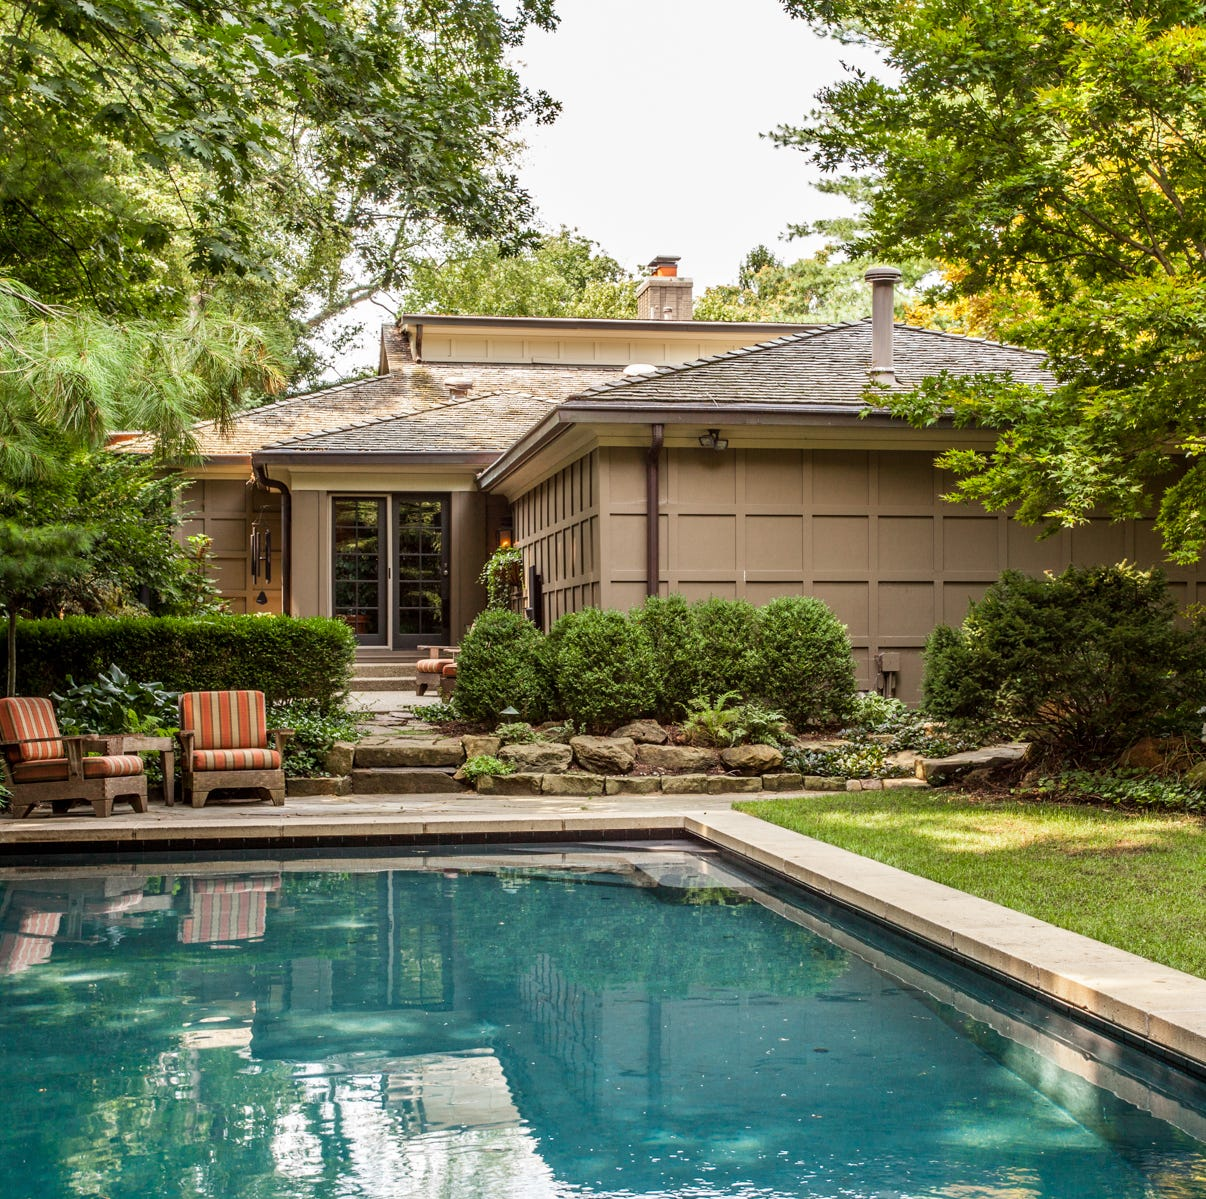 Hot Property: How Meridian-Kessler home became owner's 'dream vision' with pool